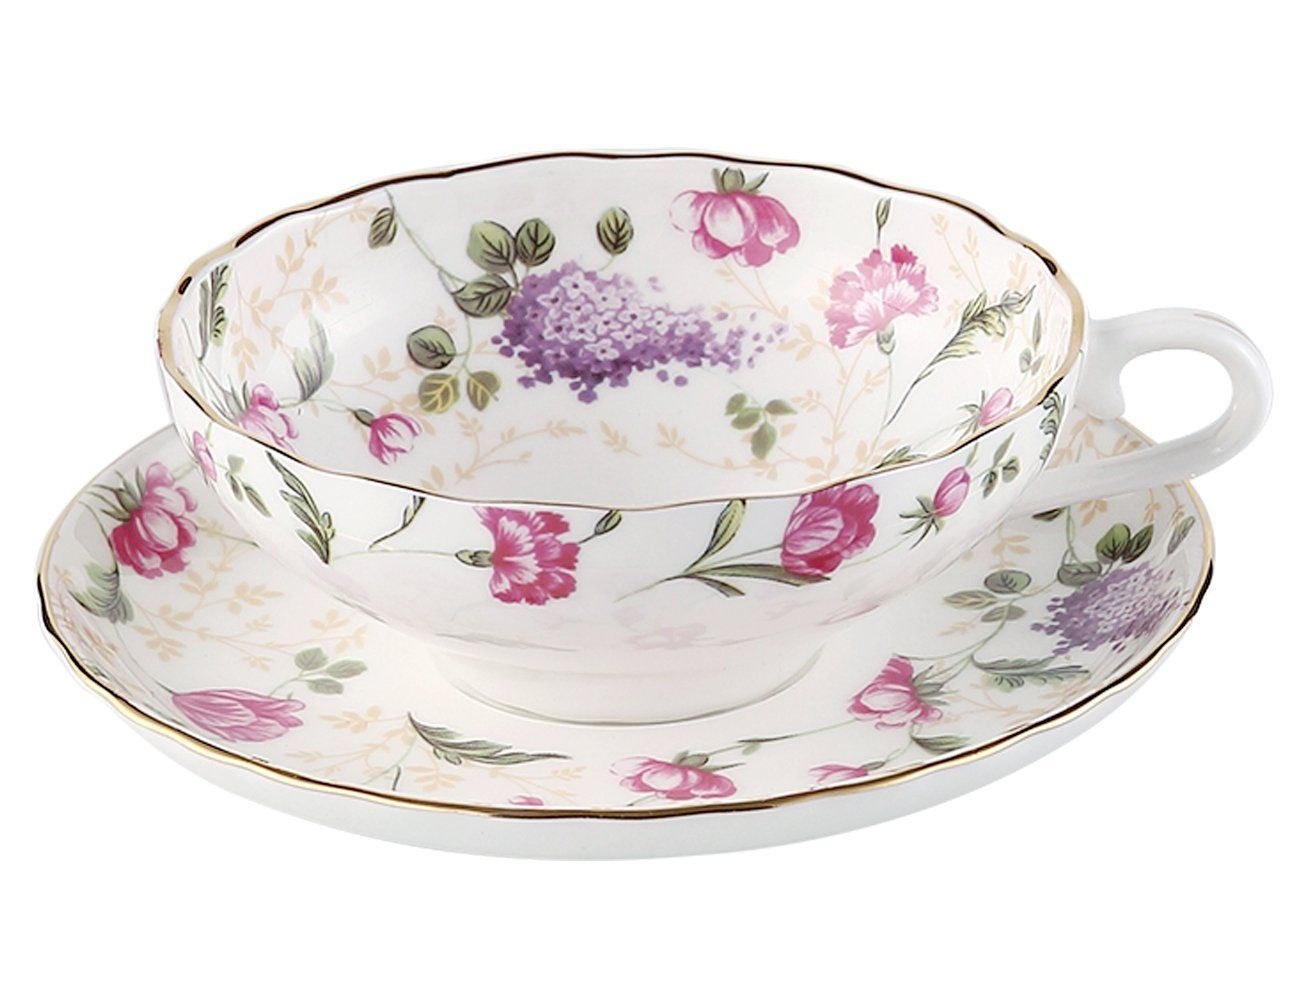 Jsaron Vintage Flower Tea Coffee Cup with Spoon and Saucer